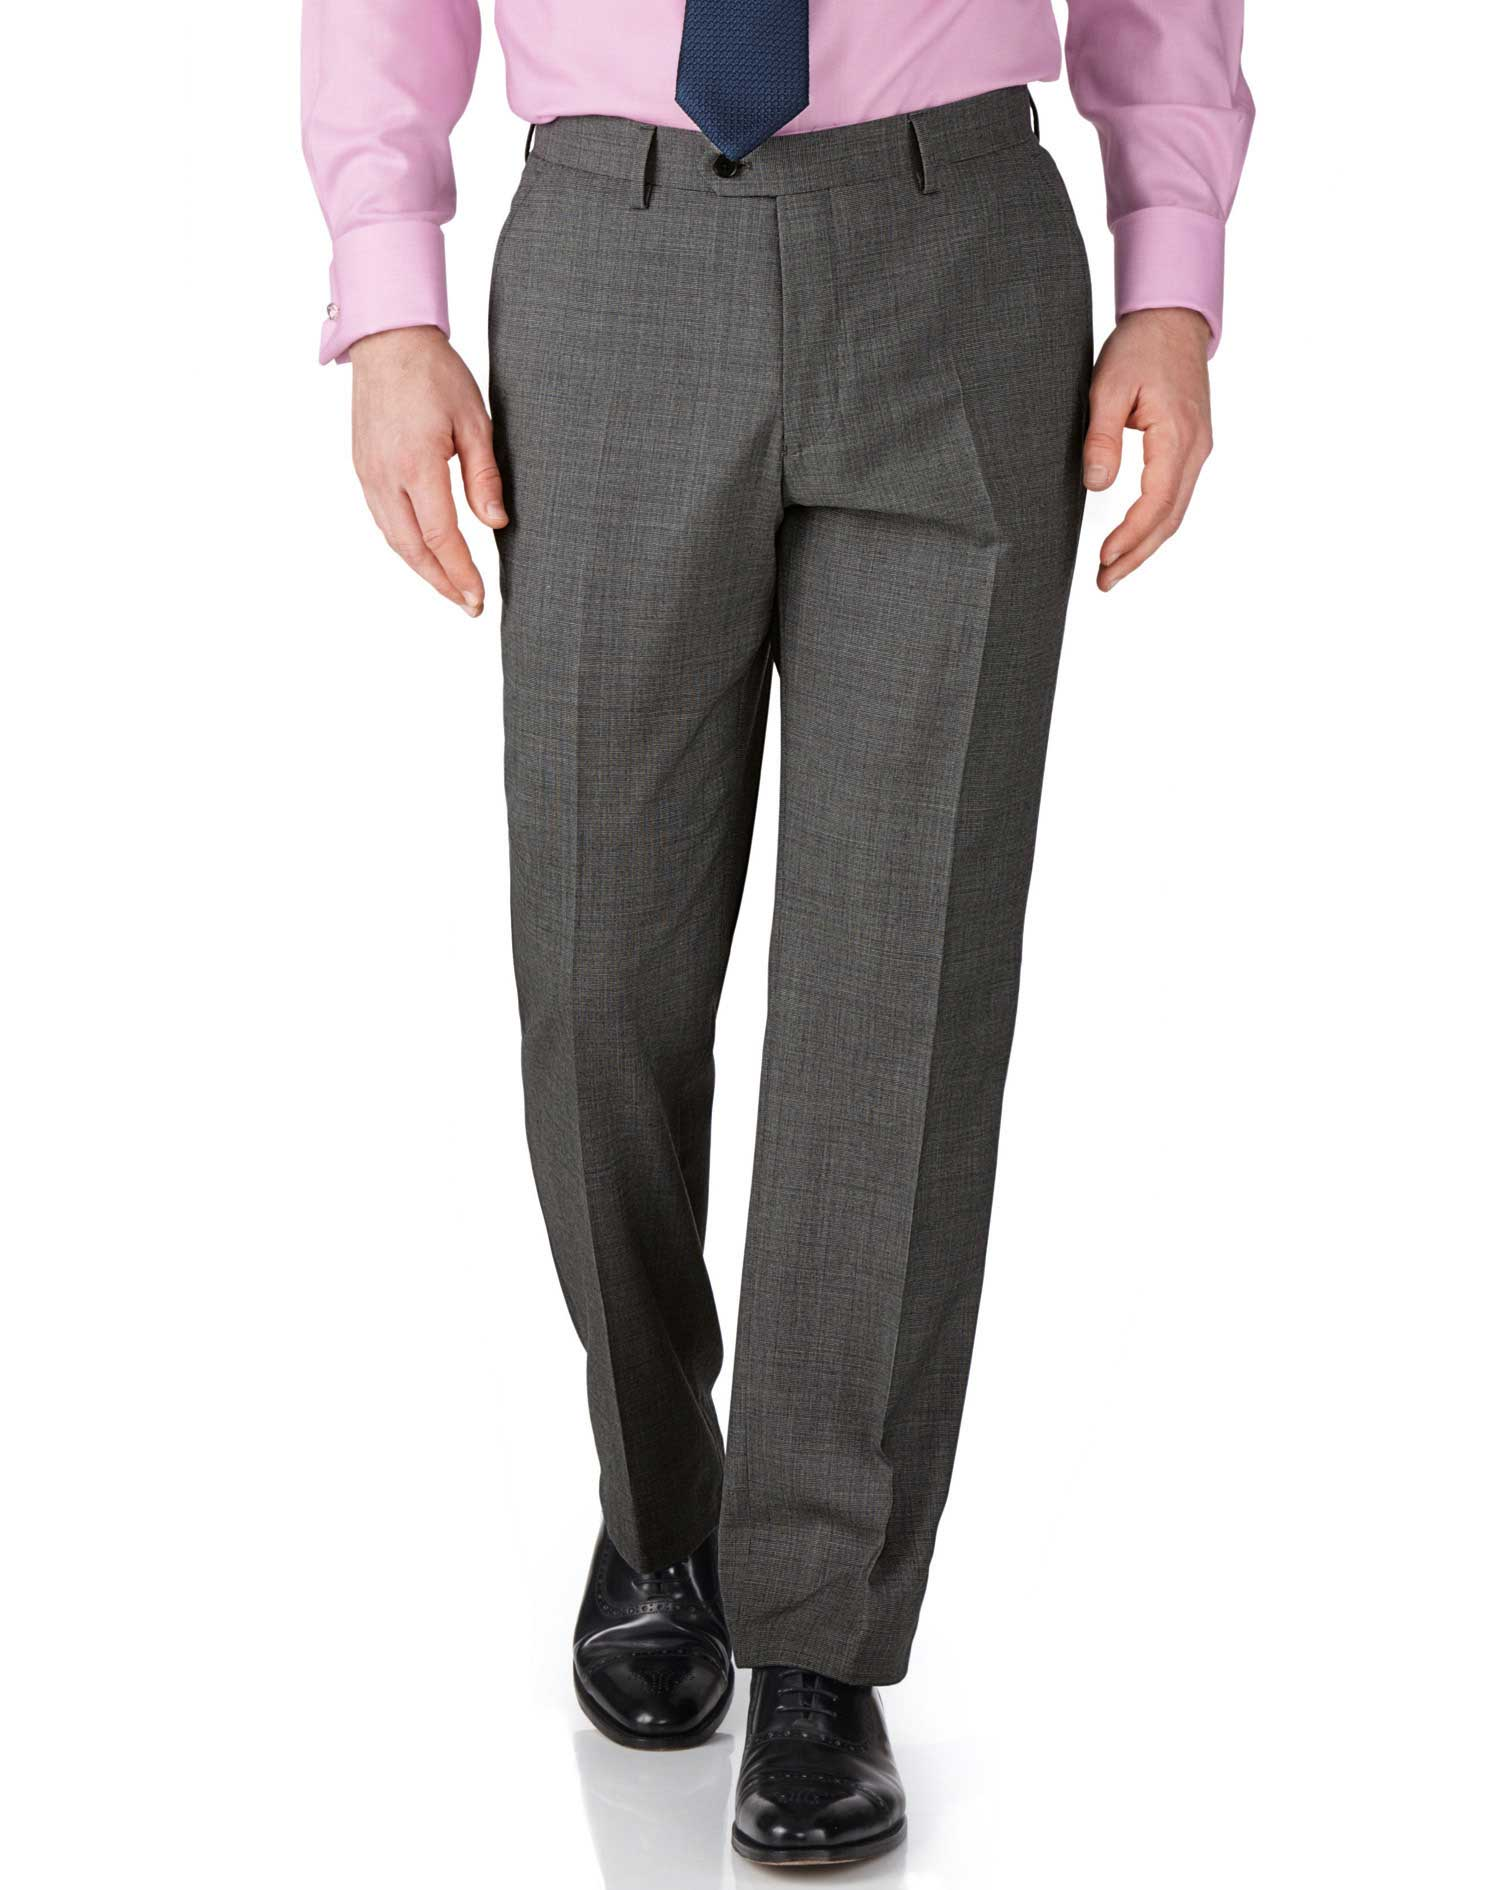 Grey Slim Fit End-On-End Business Suit Trousers Size W40 L34 by Charles Tyrwhitt